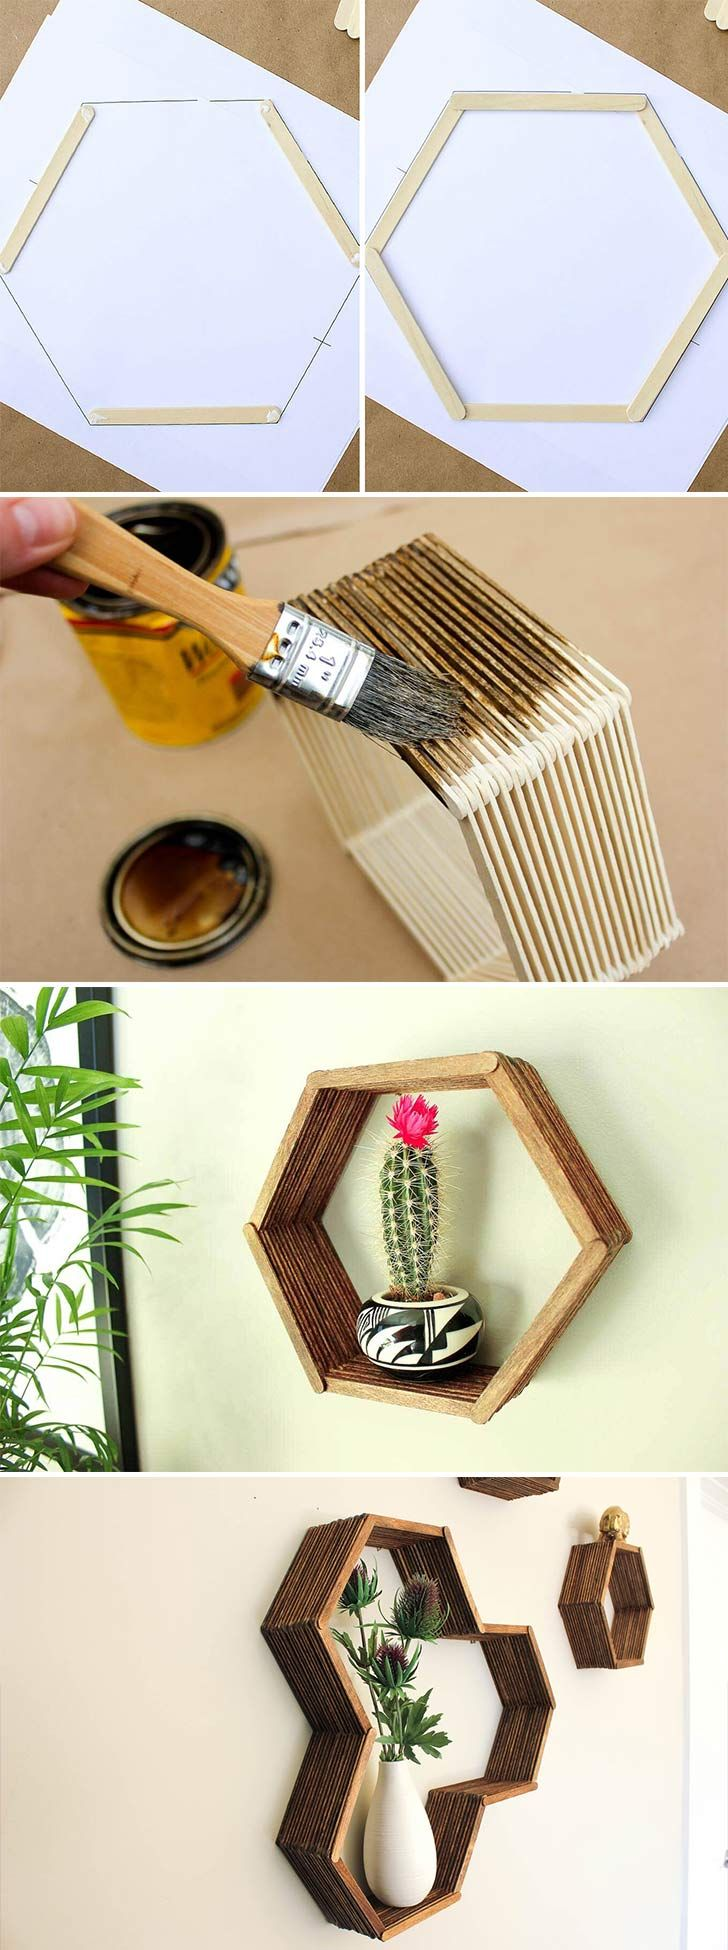 40 amazing diy home decor ideas that wont look diyed page 11 of 40 - At Home Home Decor